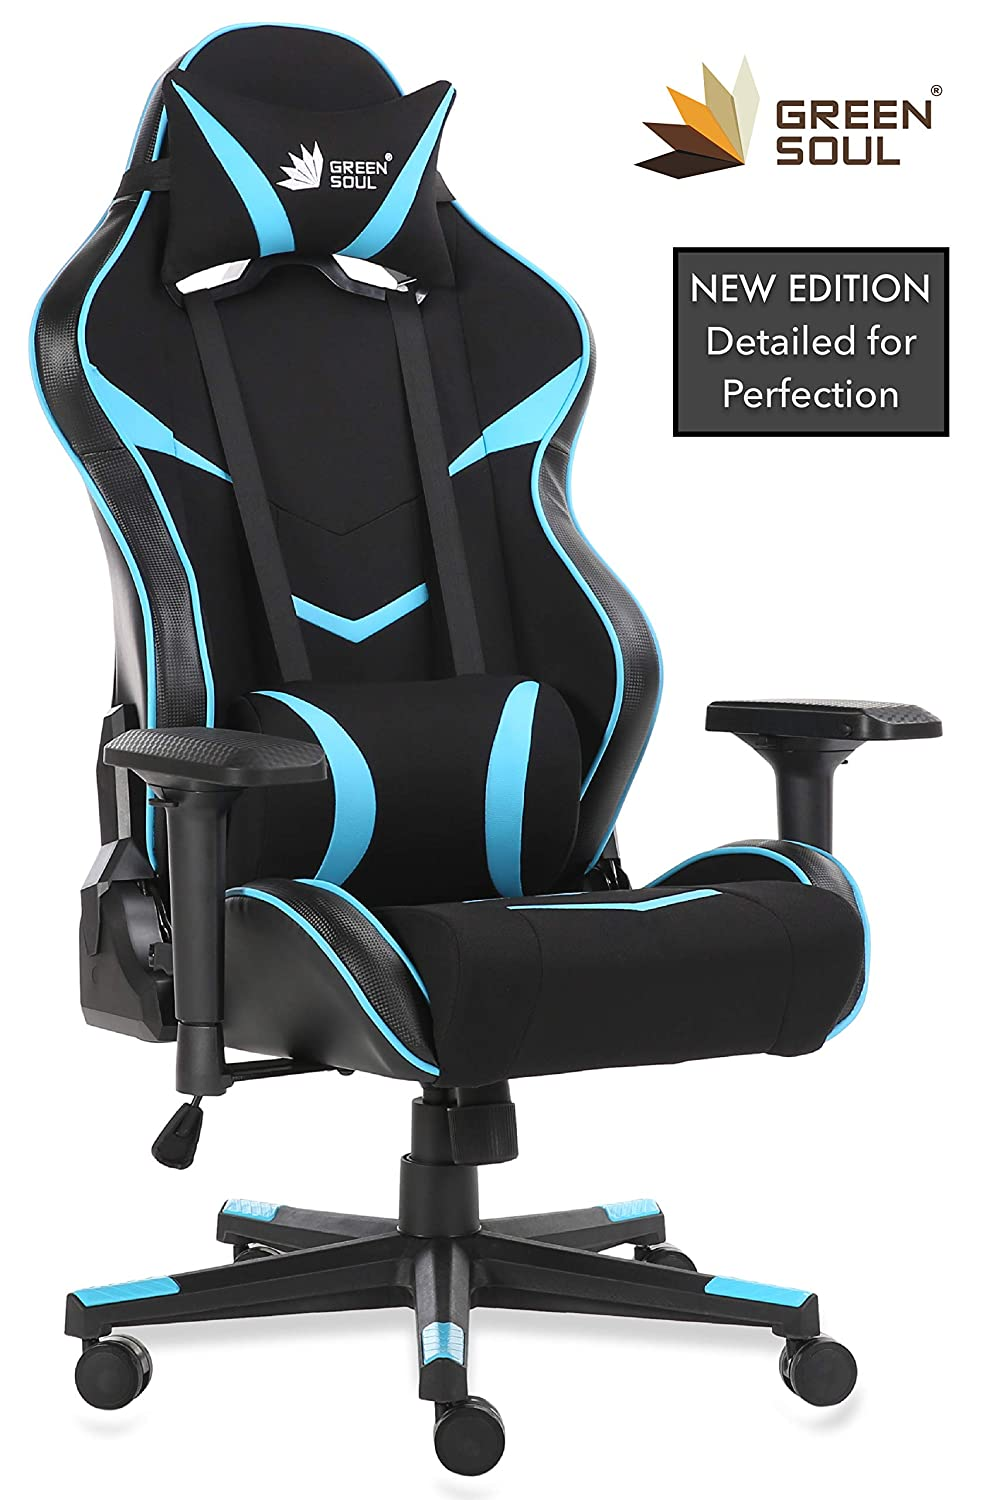 GreenSoul Monster Series Gaming/Ergonomic Chair (Model: